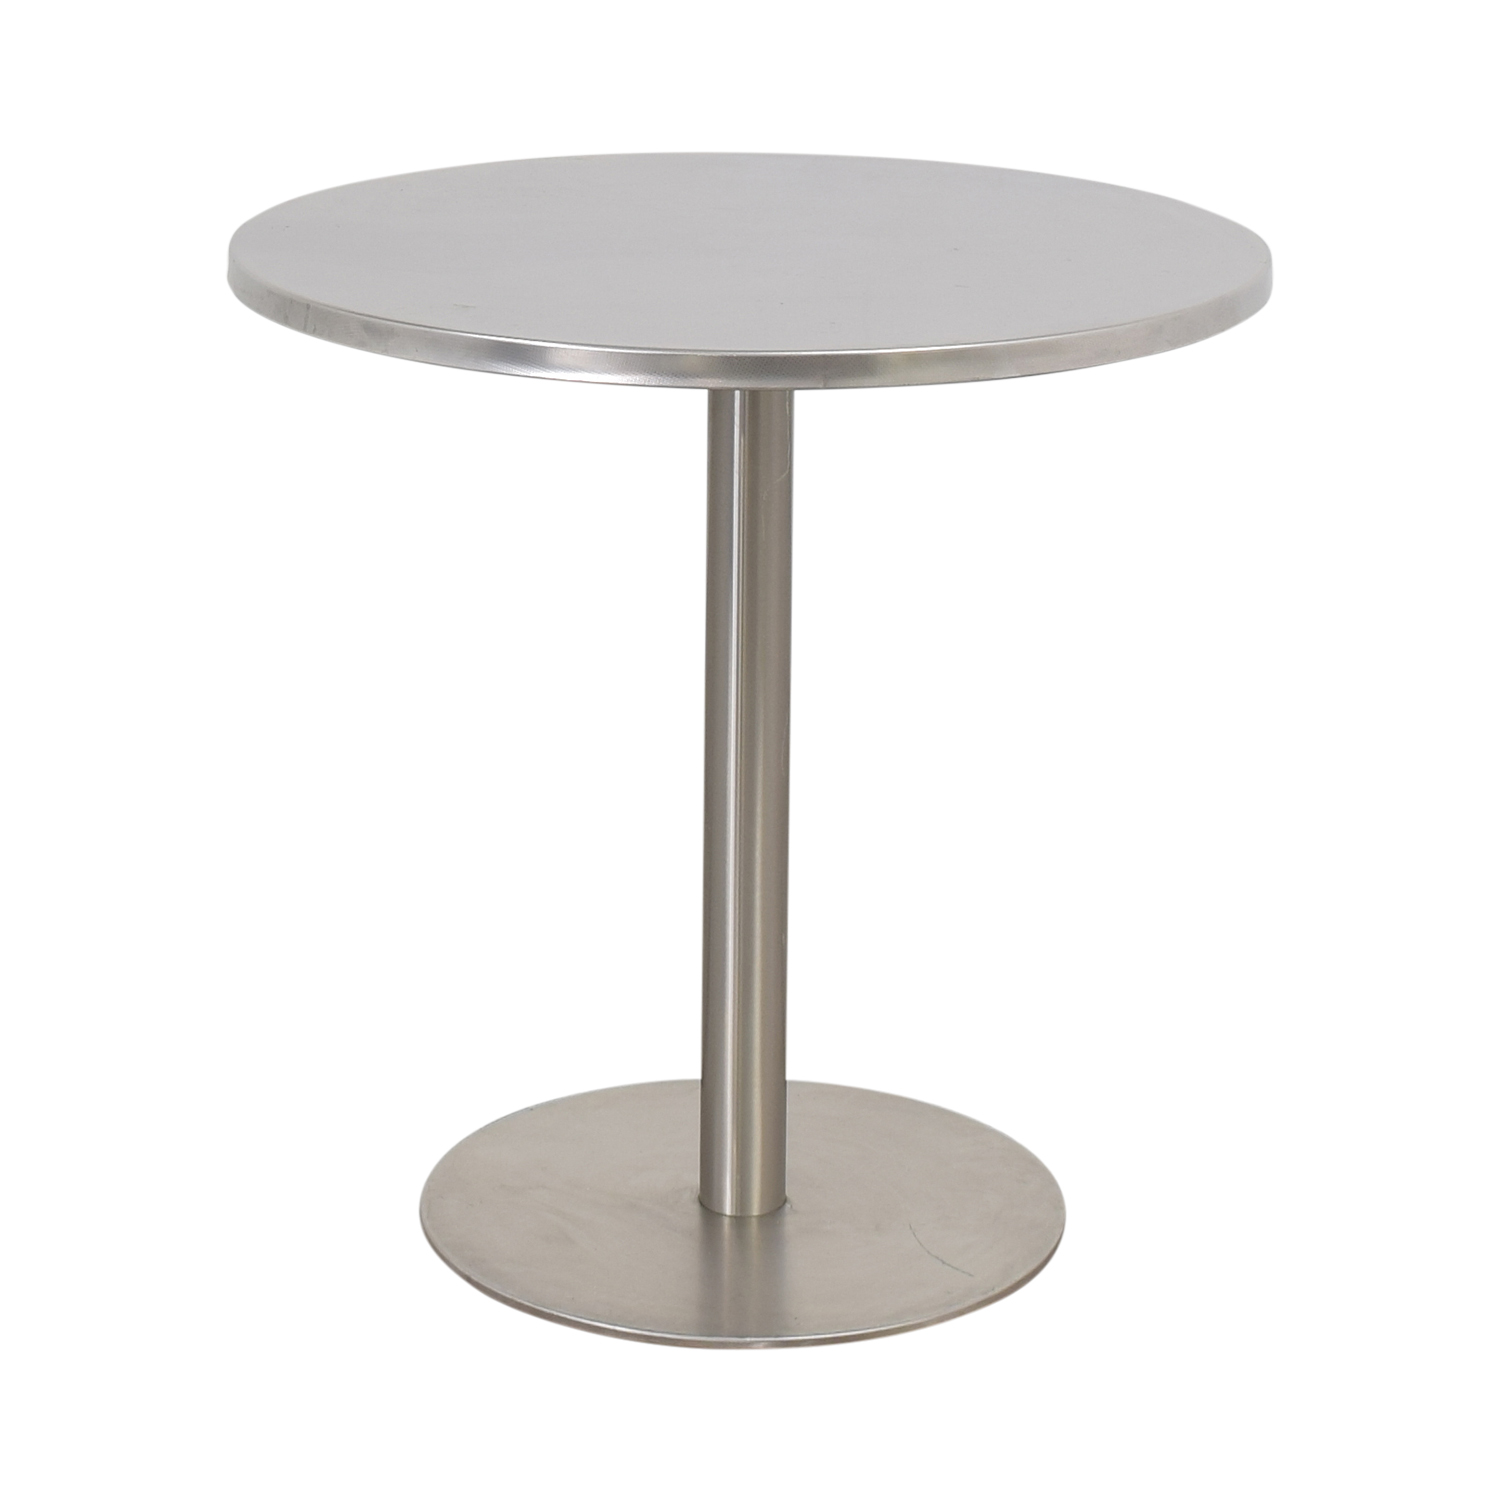 CB2 CB2 Watermark Bistro Table used